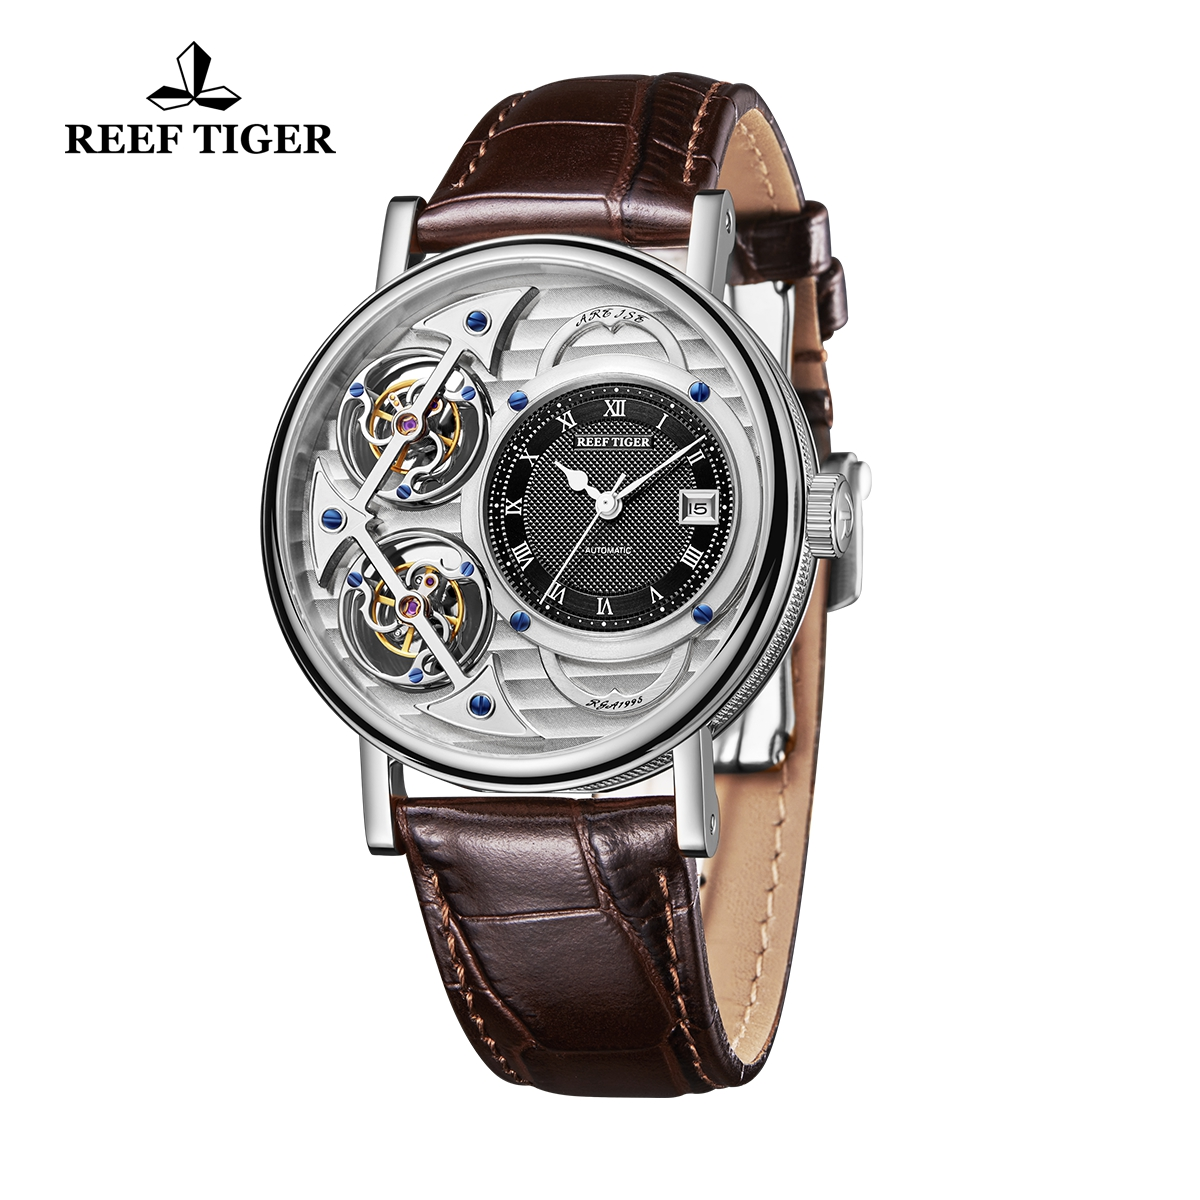 Reef Tiger Artist Magician Fashion Men\'s Steel Watches Leather Strap Automatic Watch With Date RGA1995-YSSB